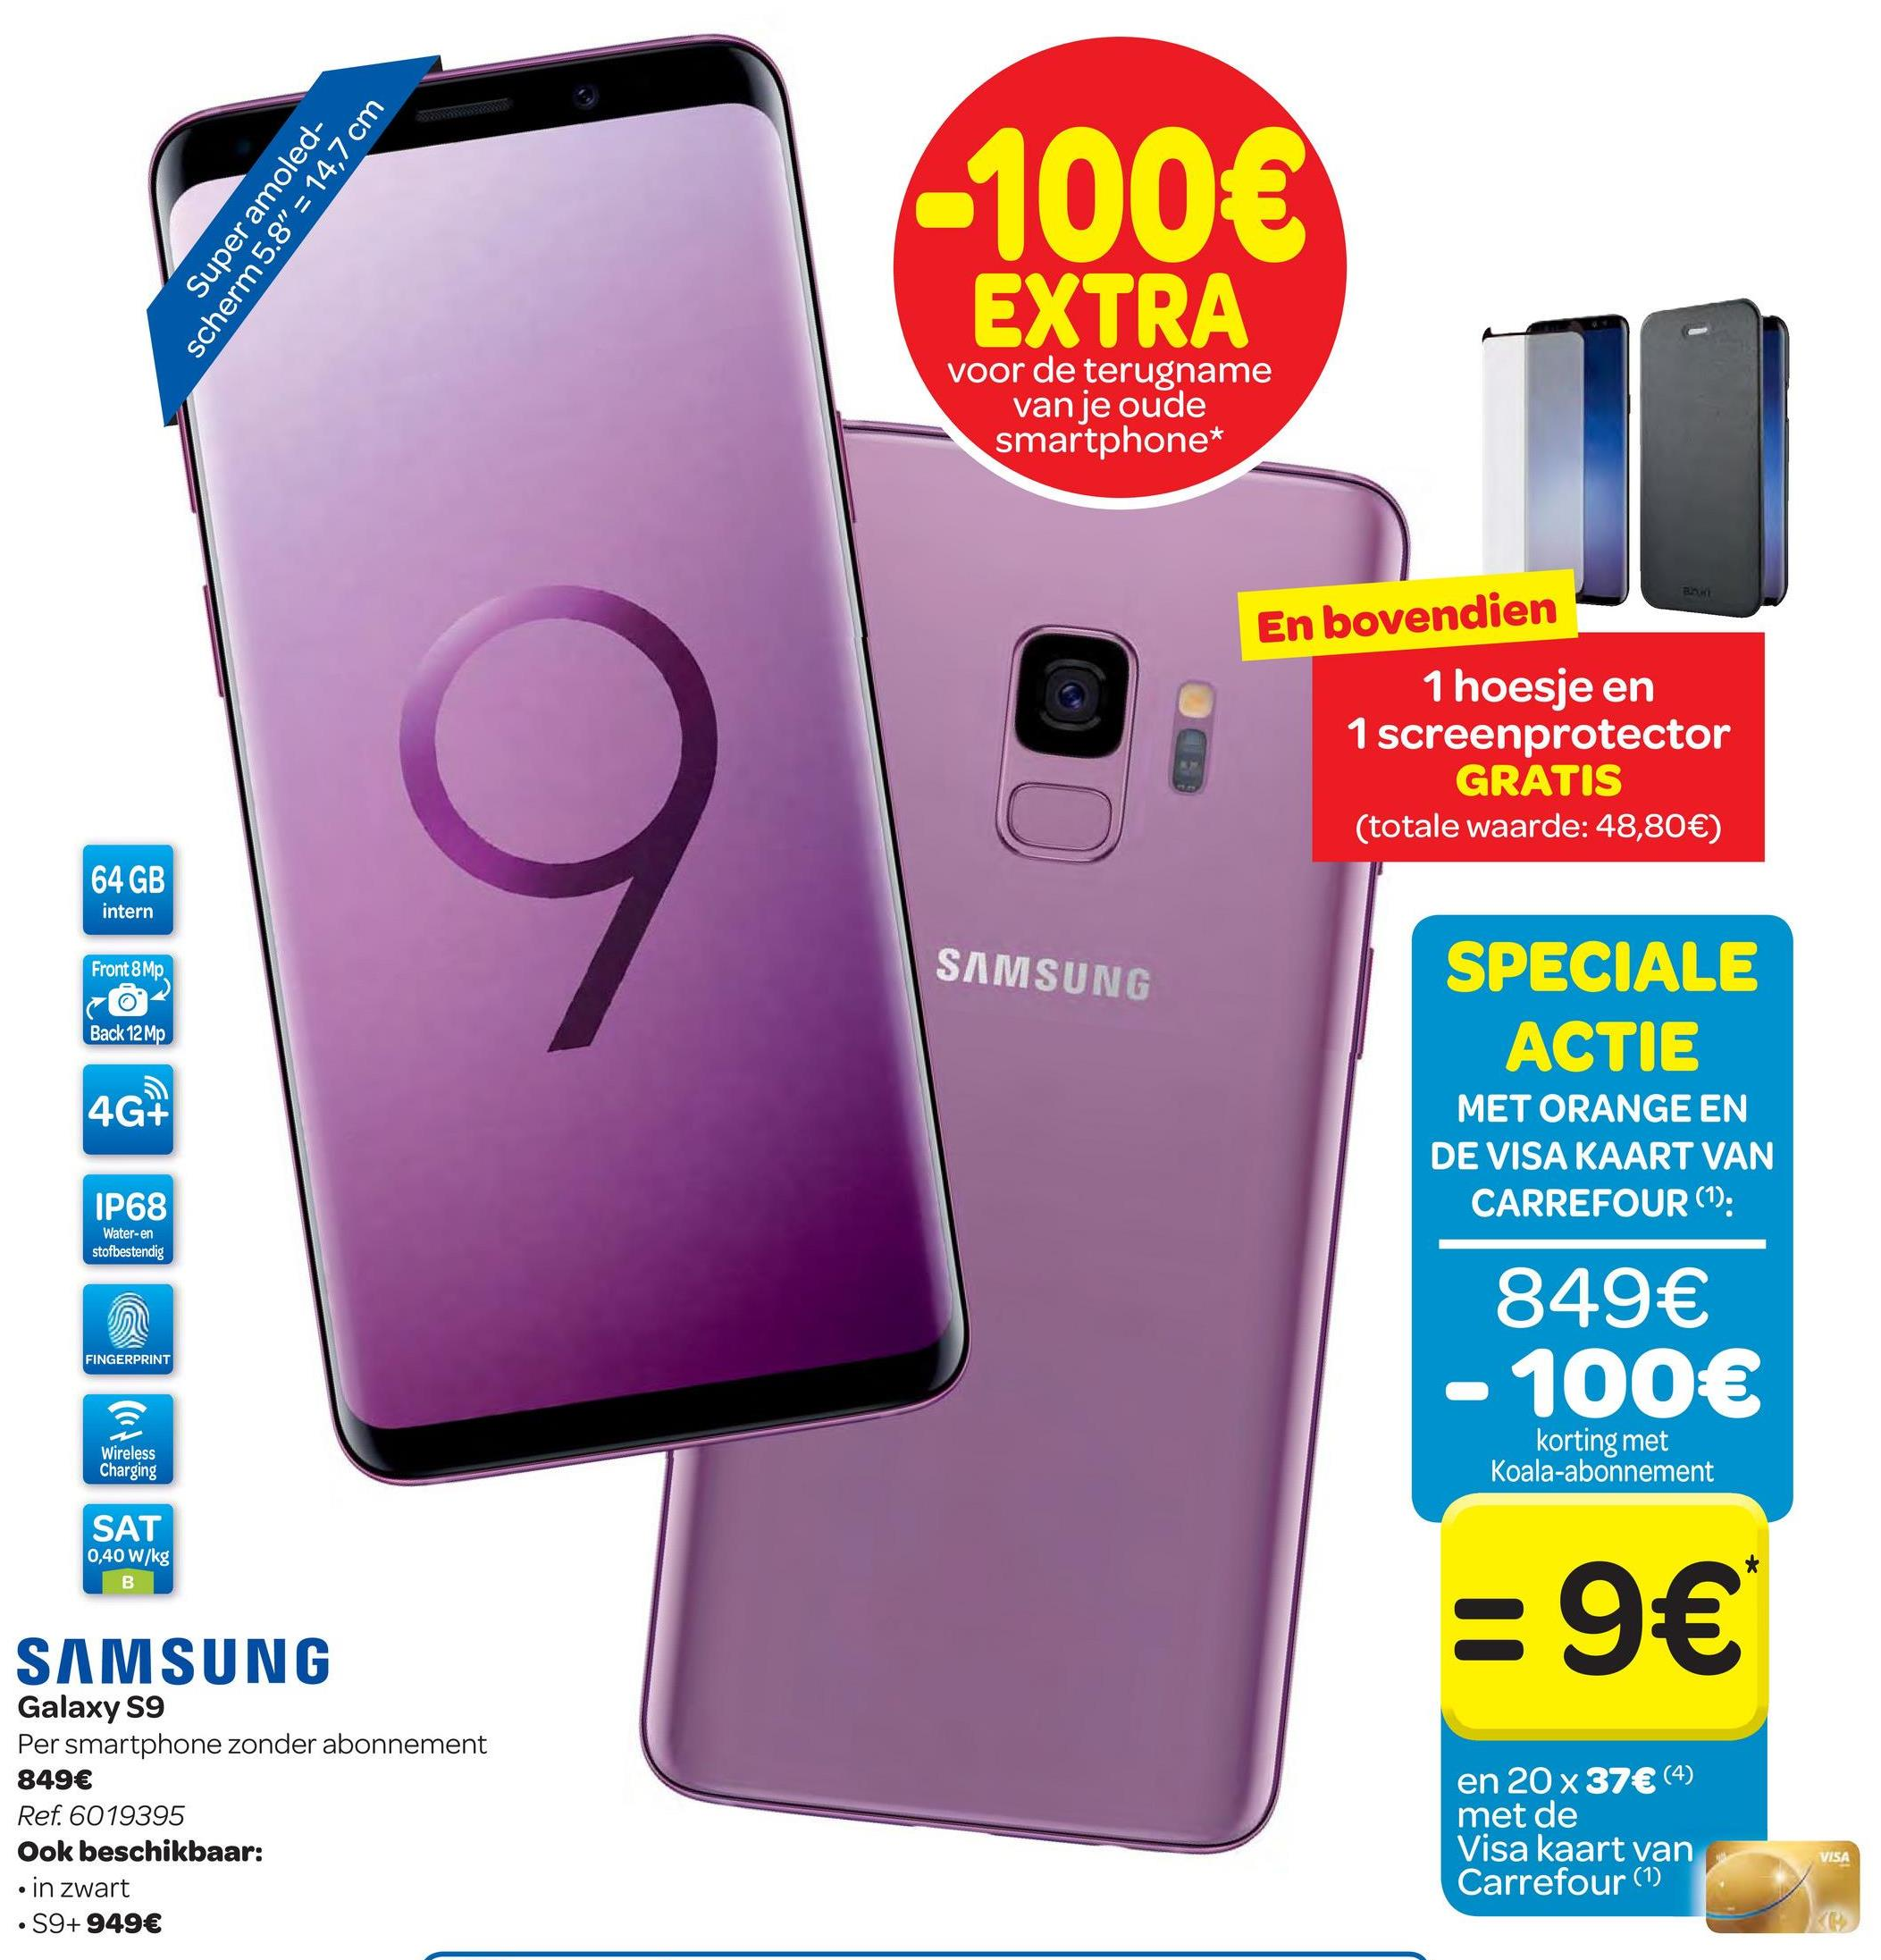 "Carrefour folder van 25/04/2018 tot 07/05/2018 - Super amoled- scherm 5.8"" = 14,7 cm -100€ EXTRA voor de terugname van je oude smartphone* En bovendien 1 hoesje en 1 screenprotector GRATIS (totale waarde: 48,80€) 64 GB intern Front 8 Mp SAMSUNG co- Back 12 MP SPECIALE ACTIE MET ORANGE EN DE VISA KAART VAN CARREFOUR (1): 4G+ IP68 Water-en stofbestendig 849€ - 100€ FINGERPRINT Wireless Charging korting met Koala-abonnement SAT 0,40 W/kg :9€ SAMSUNG Galaxy S9 Per smartphone zonder abonnement 849€ Ref. 6019395 Ook beschikbaar: in zwart • S9+ 949€ en 20 x 37€ (4) met de Visa kaart van Carrefour (1) VISA"